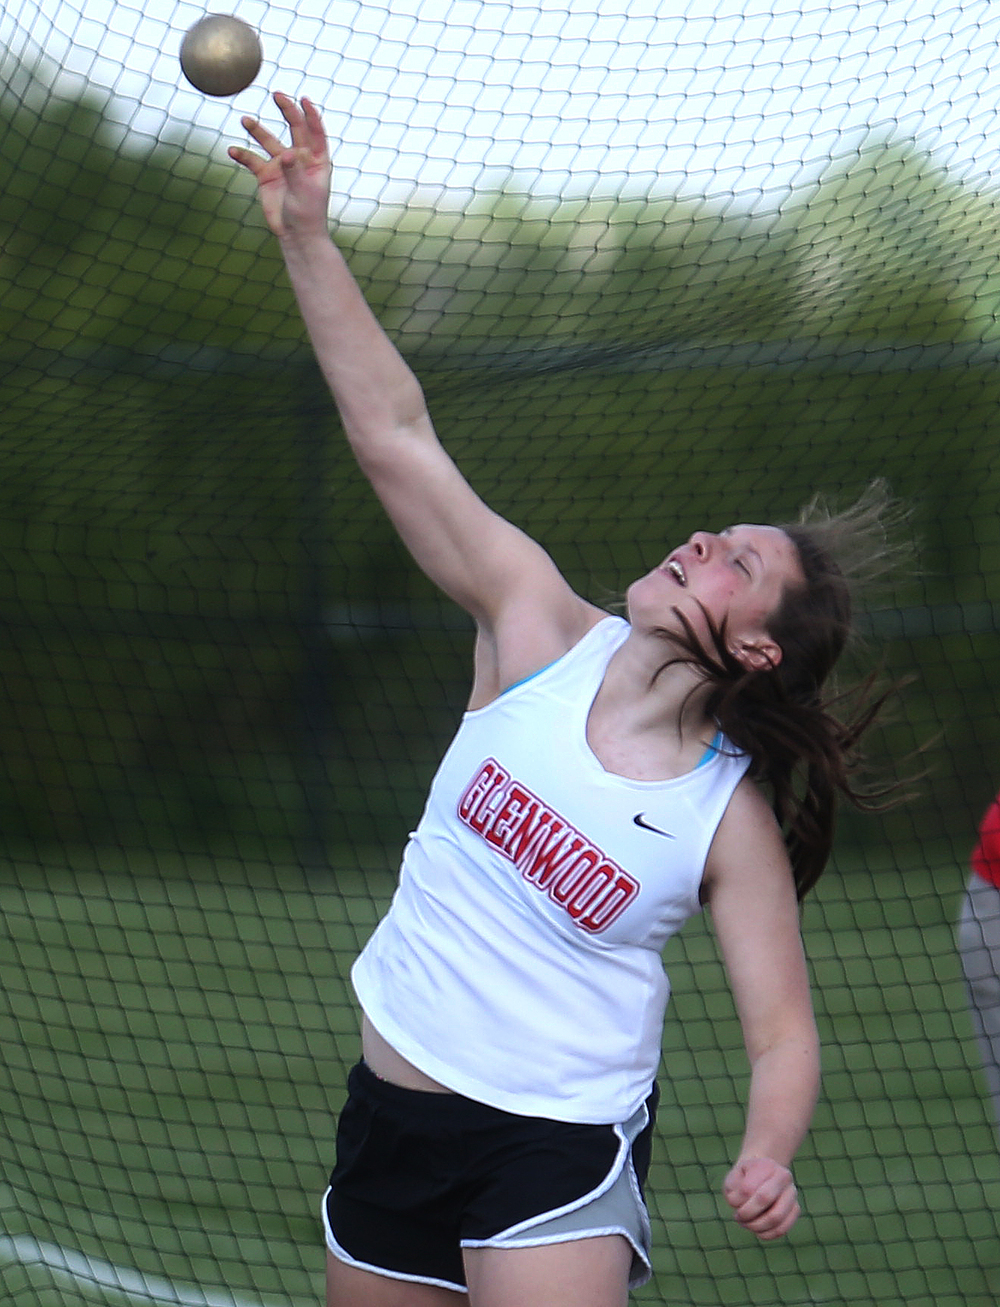 Glenwood's Mackenzie Bray shows her form en route to placing first in the shot put with a heave of 37-07.50 feet. Bray also won the discus event. David Spencer/The State Journal-Register